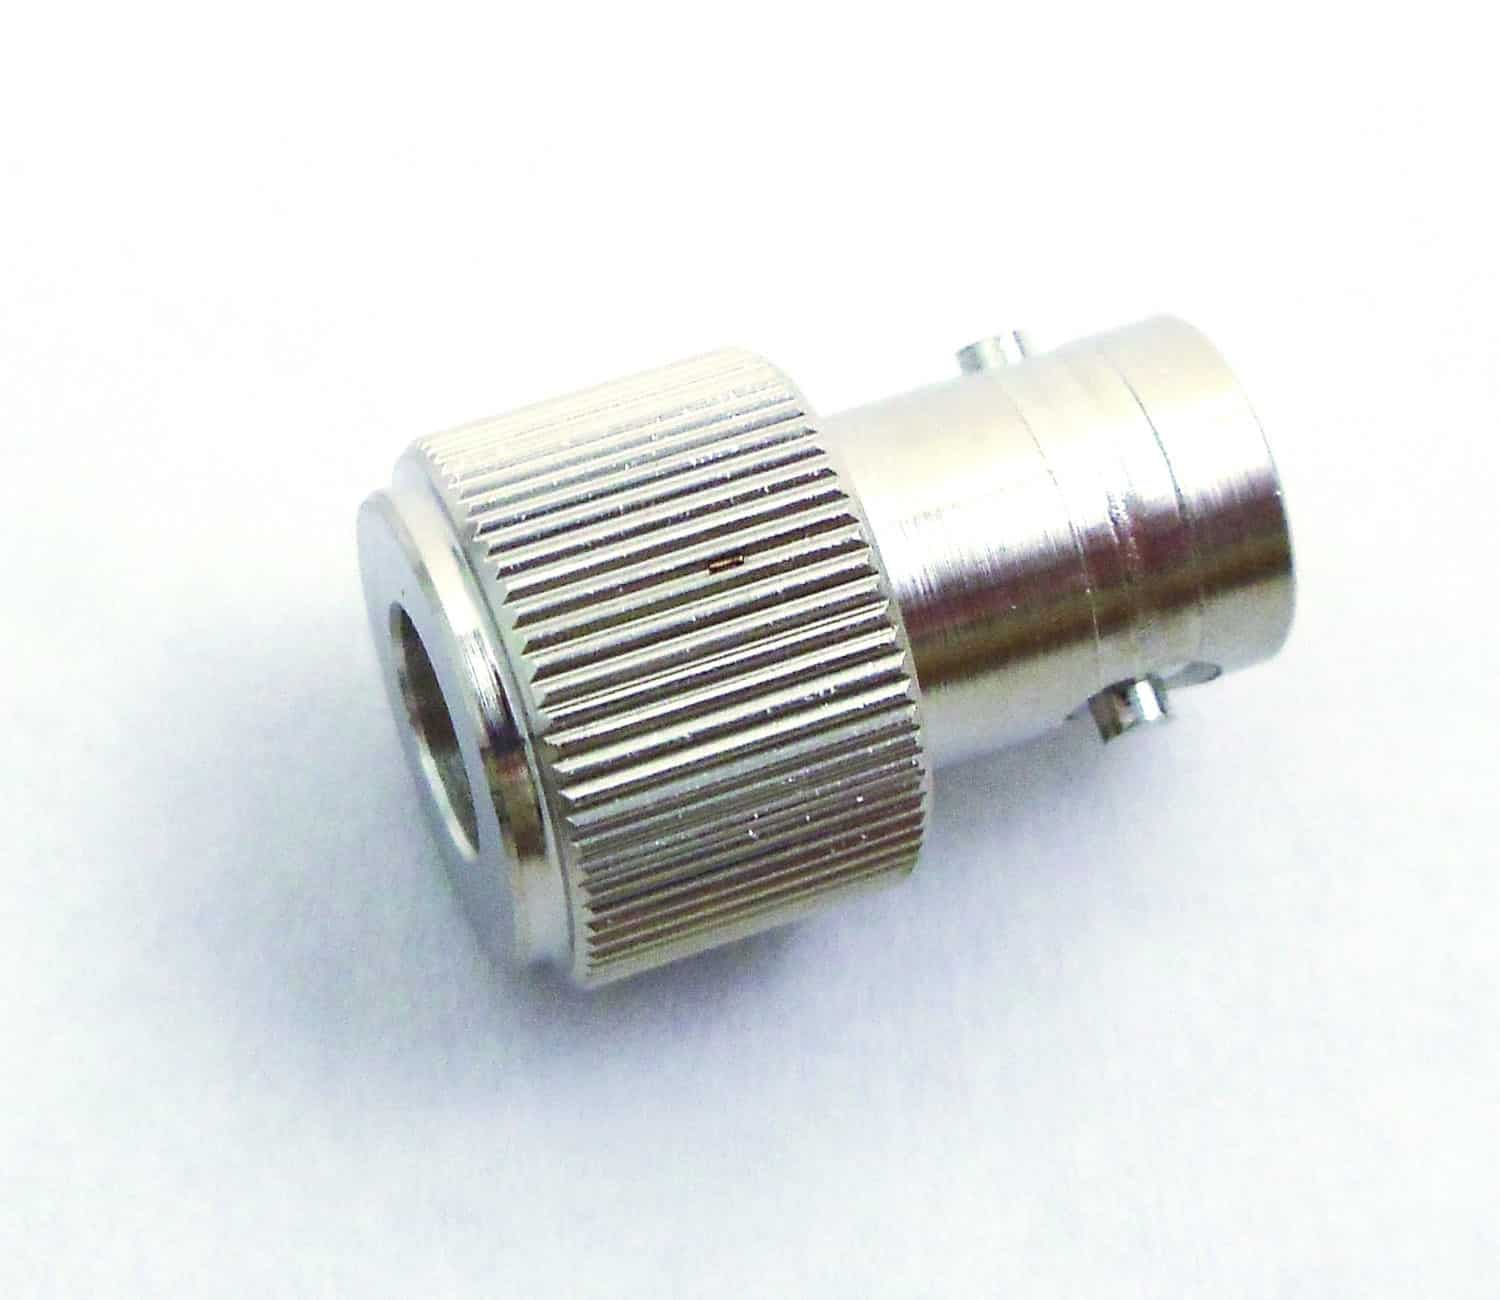 BYYG1542001 - Uniden SMA Male To BNC Female Adapter